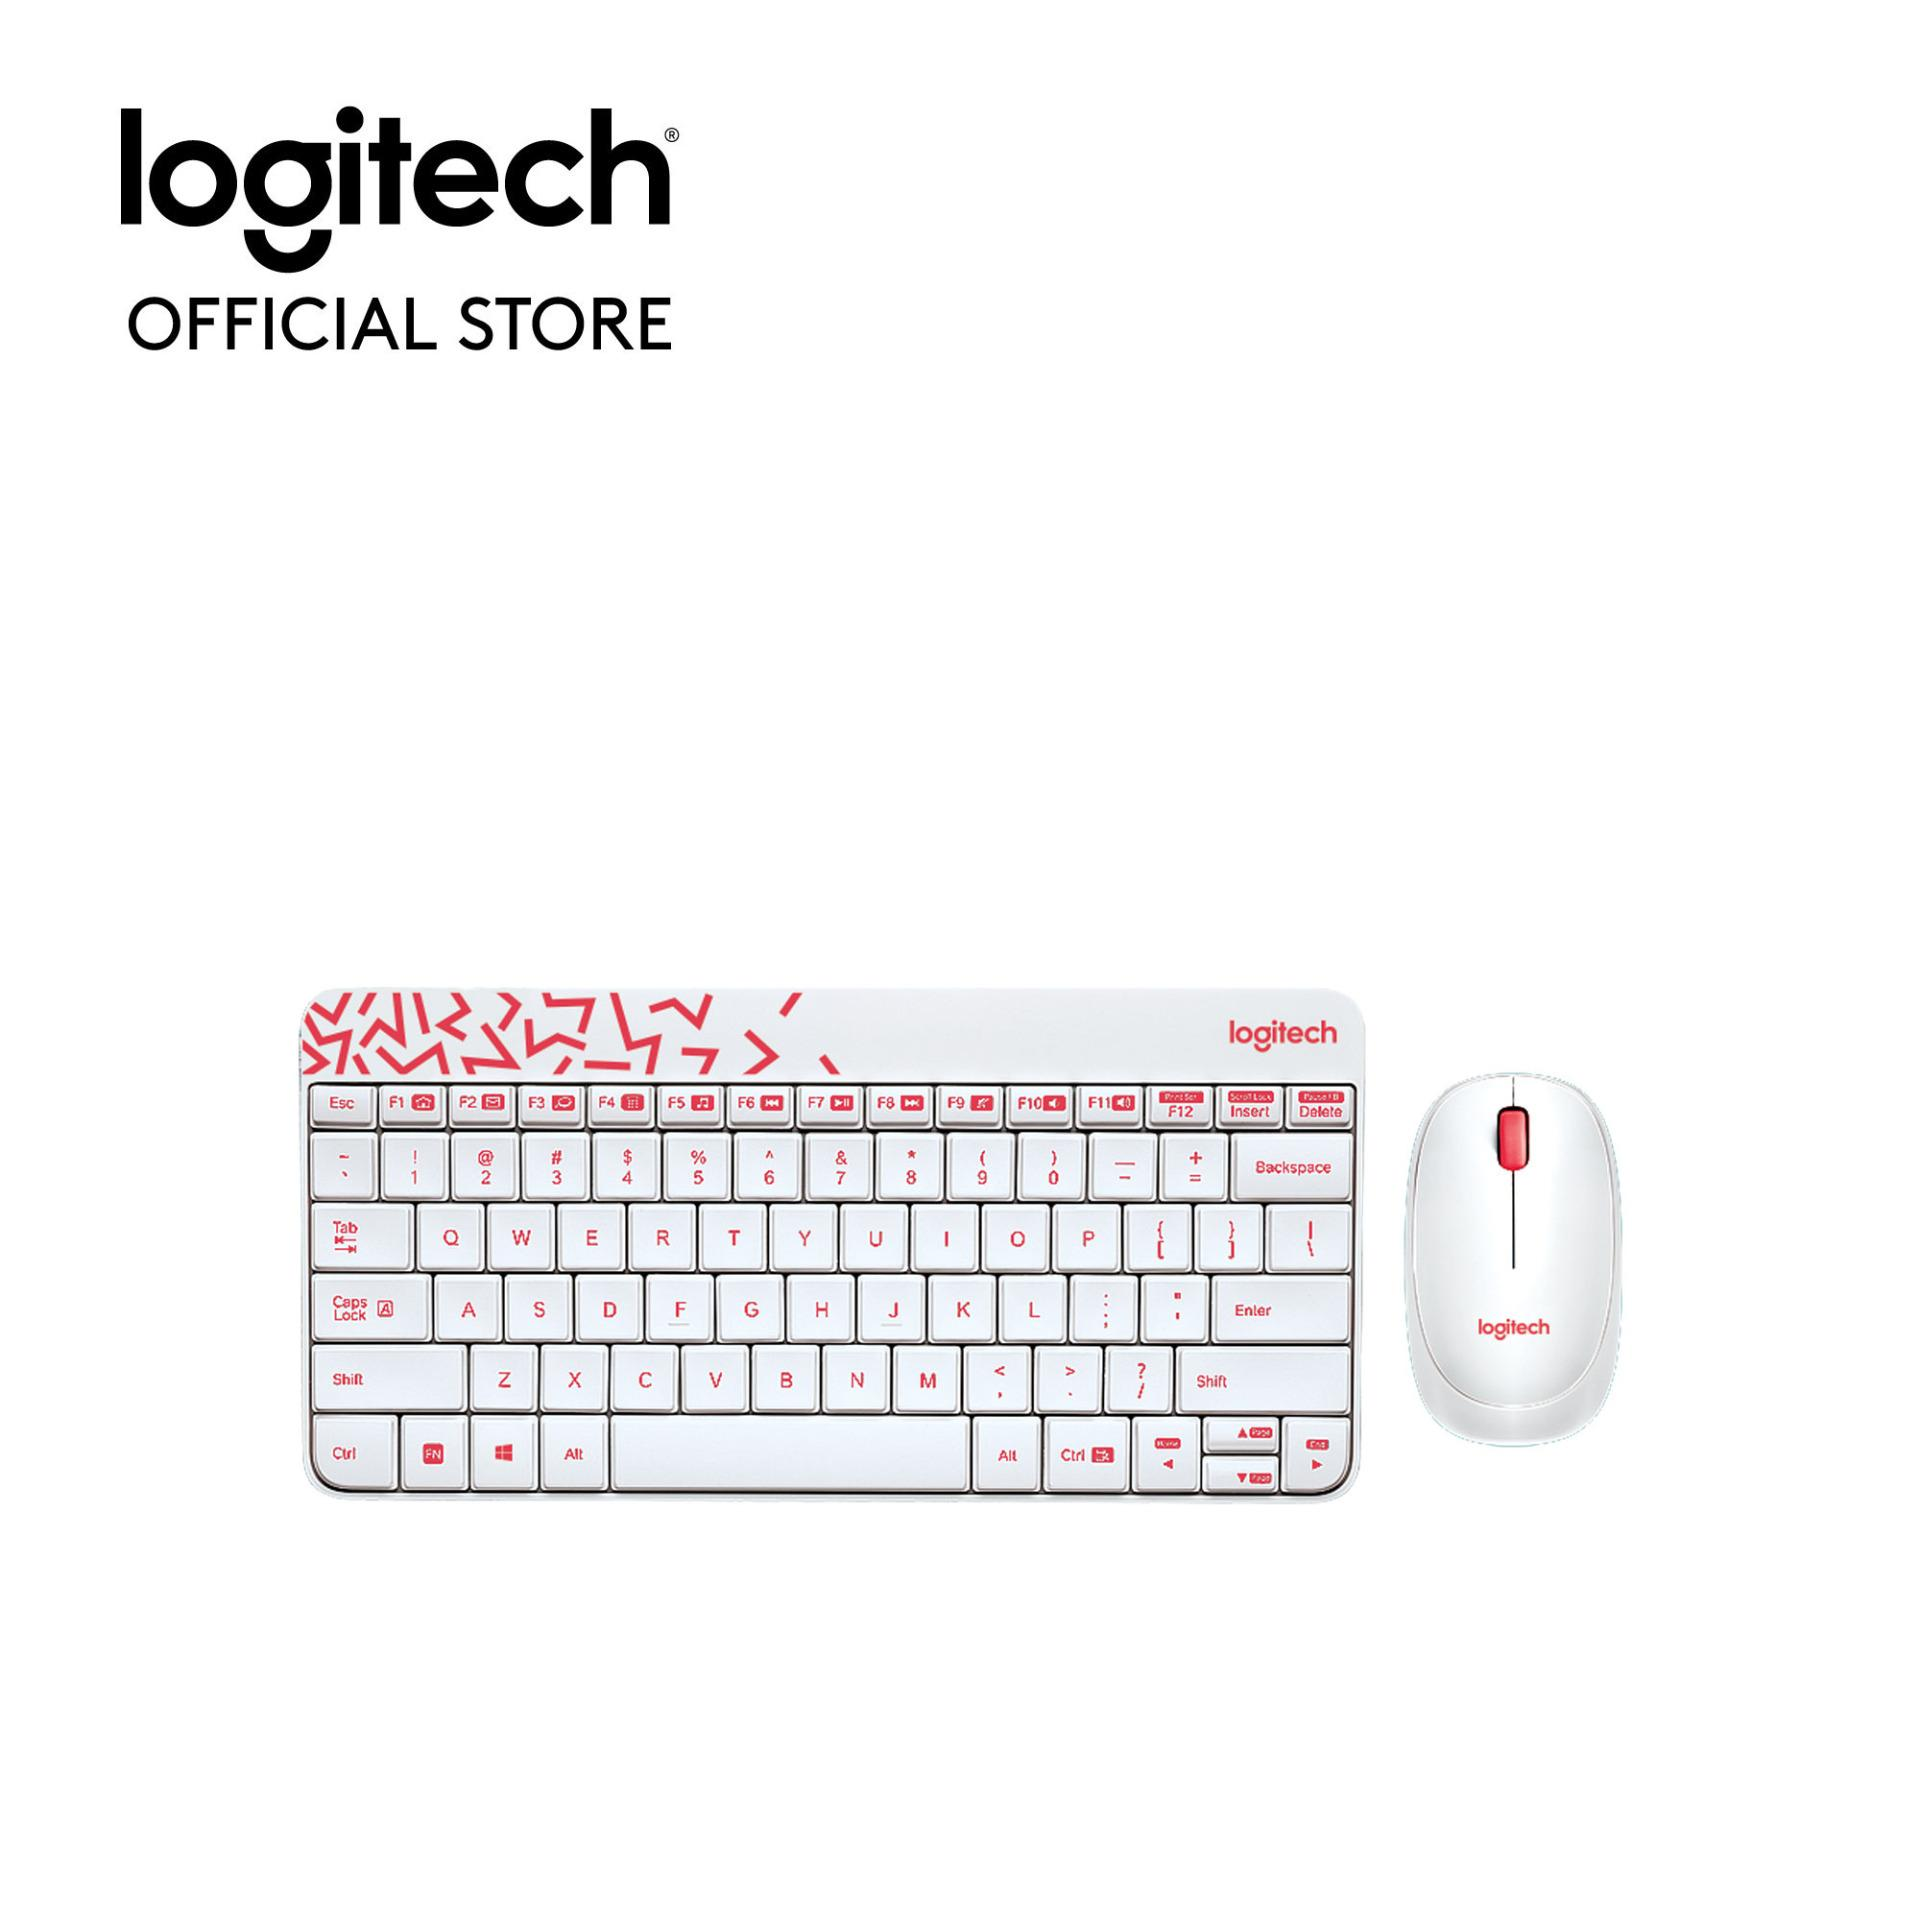 Daftar Harga Keyboard Wireless Logitech Terbaru April 2018 Laptop Combo Mk345 Garansi Resmi Mk240 Nano And Mouse White